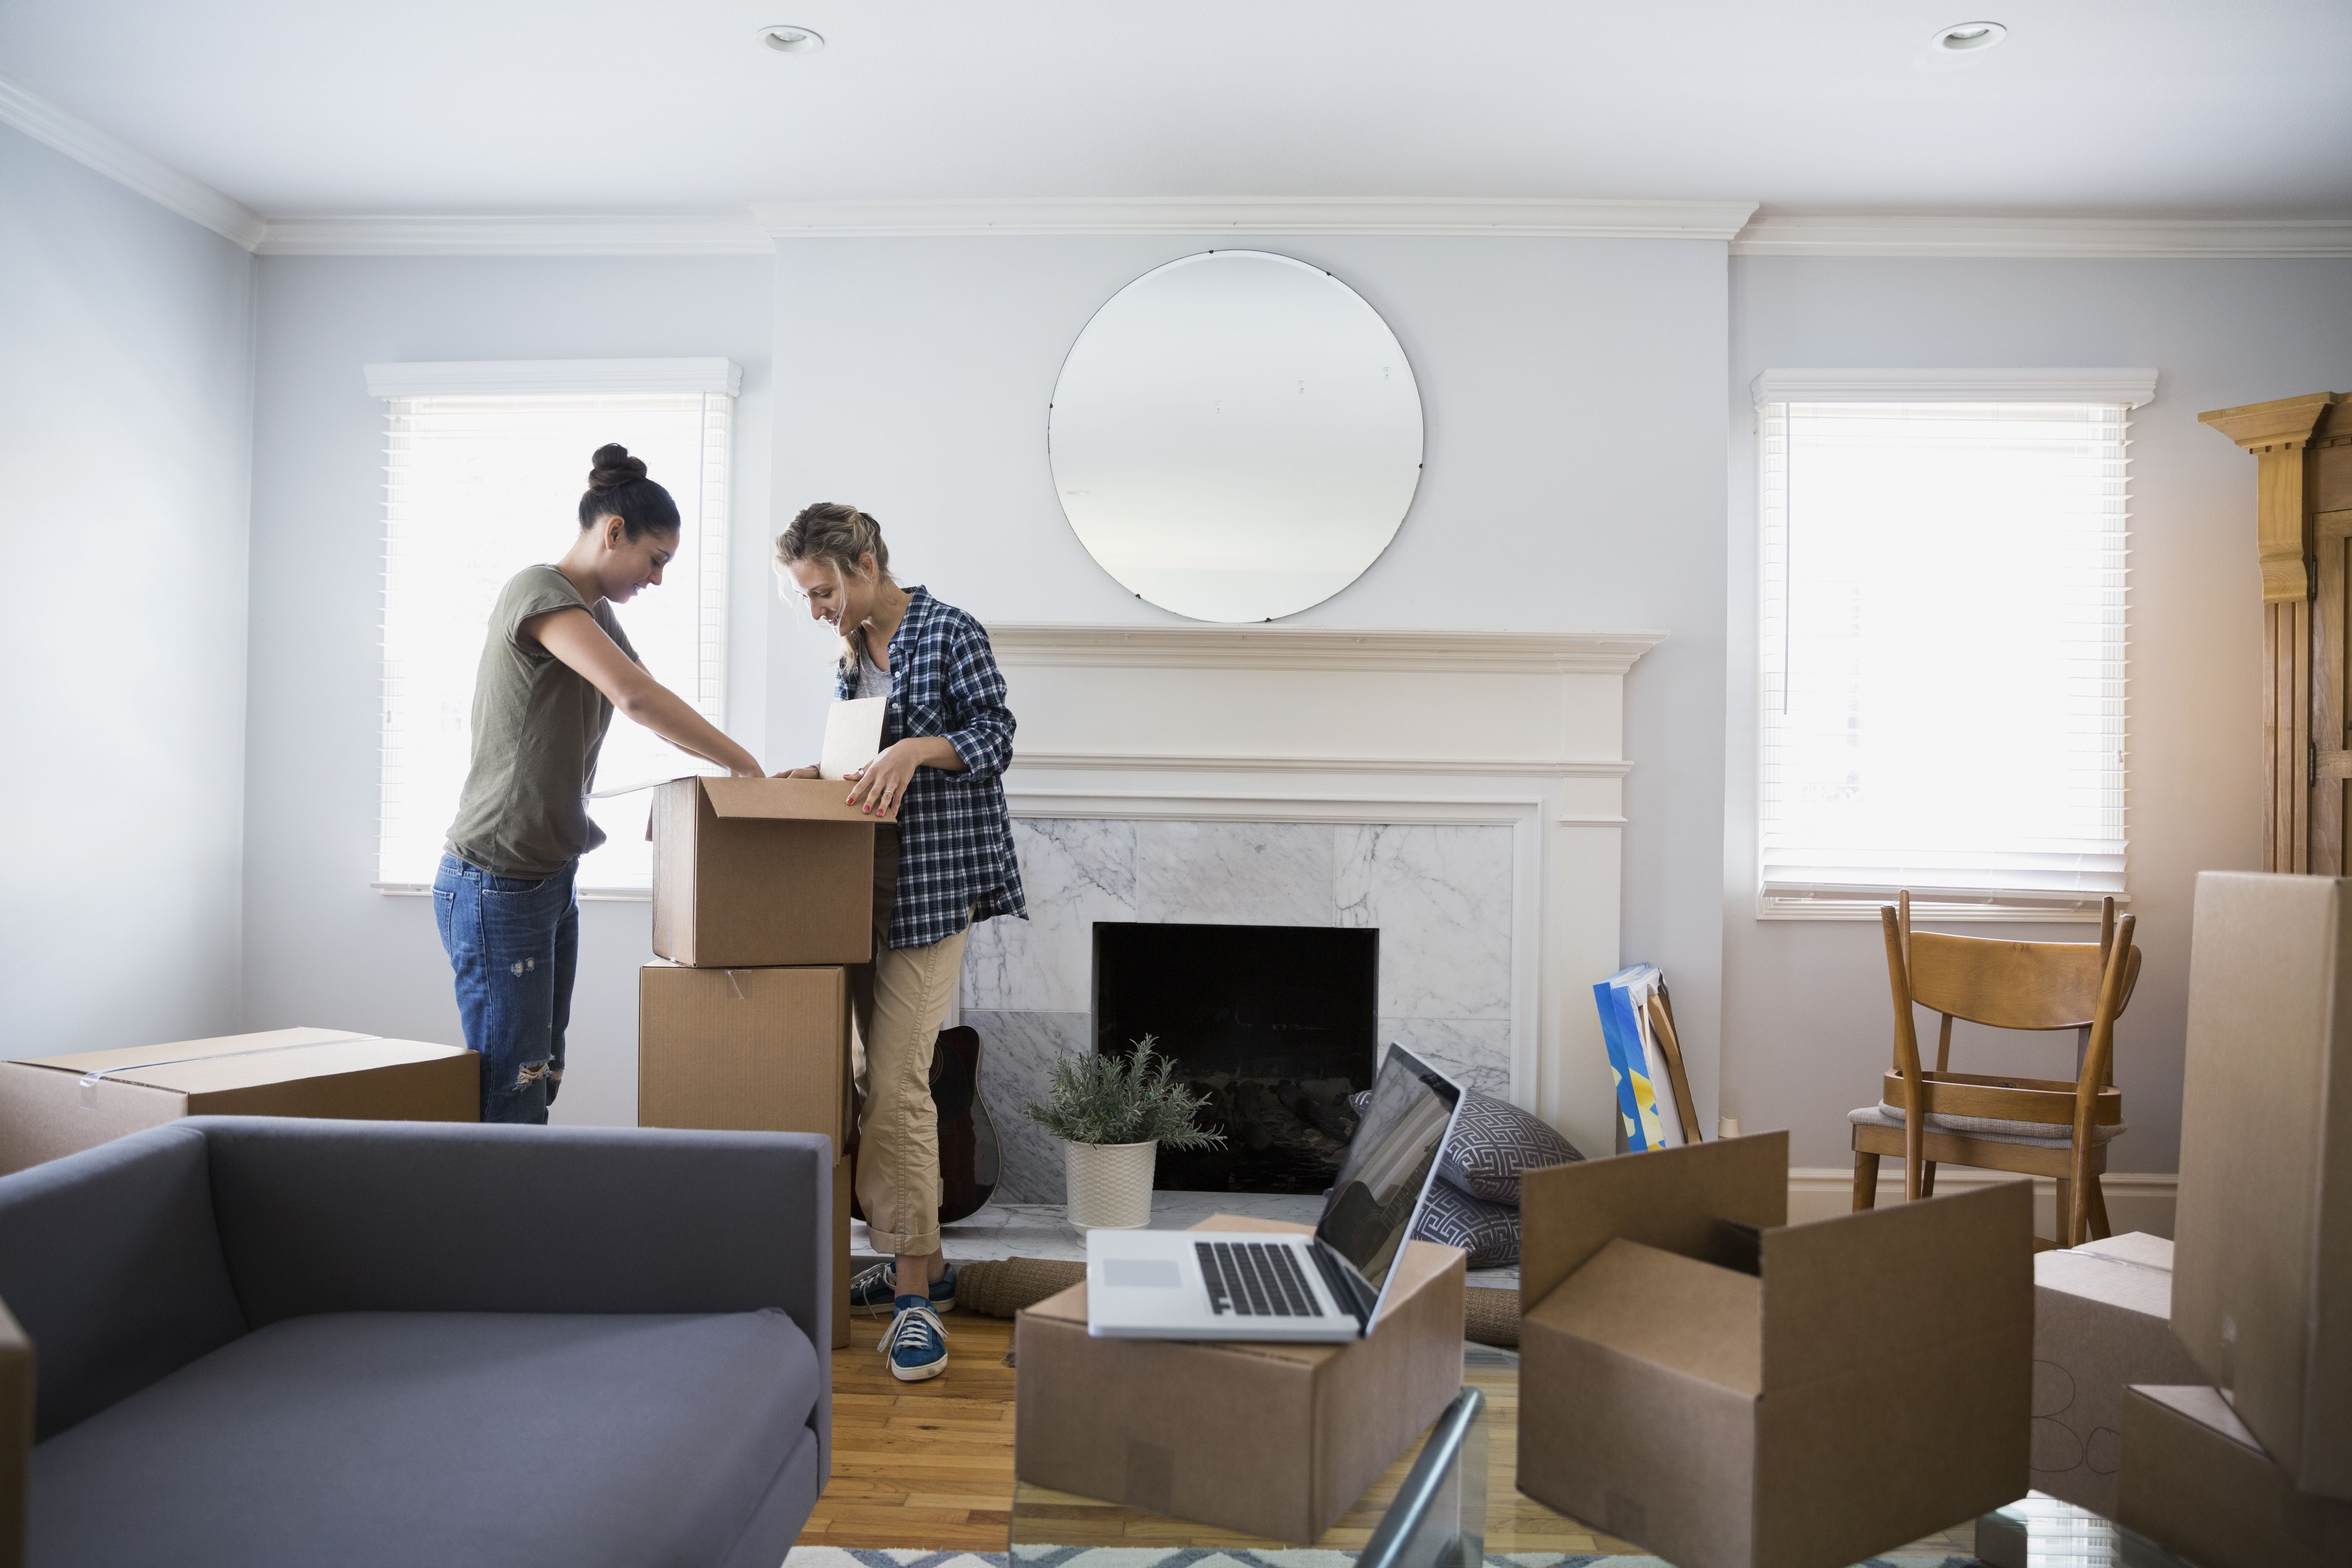 A Beginner s Guide to Packing Your Home for a Household Move. How to Start Packing all Your Stuff for Your Household Move